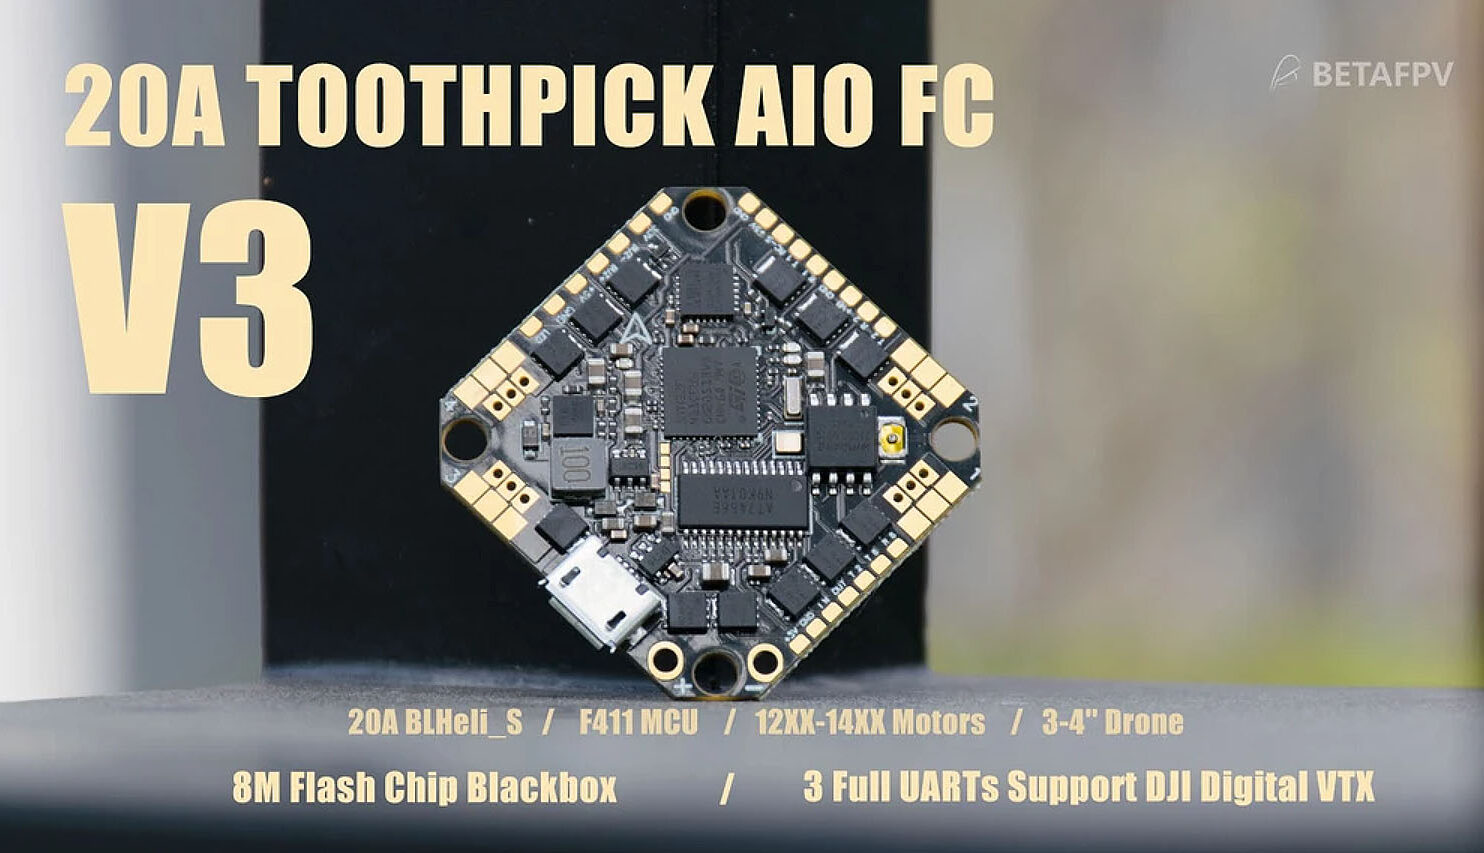 BetaFPV Toothpick F4 2 6S AIO Brushless Flight Controller Banner 20A V3 MantisFPV e1602573827379